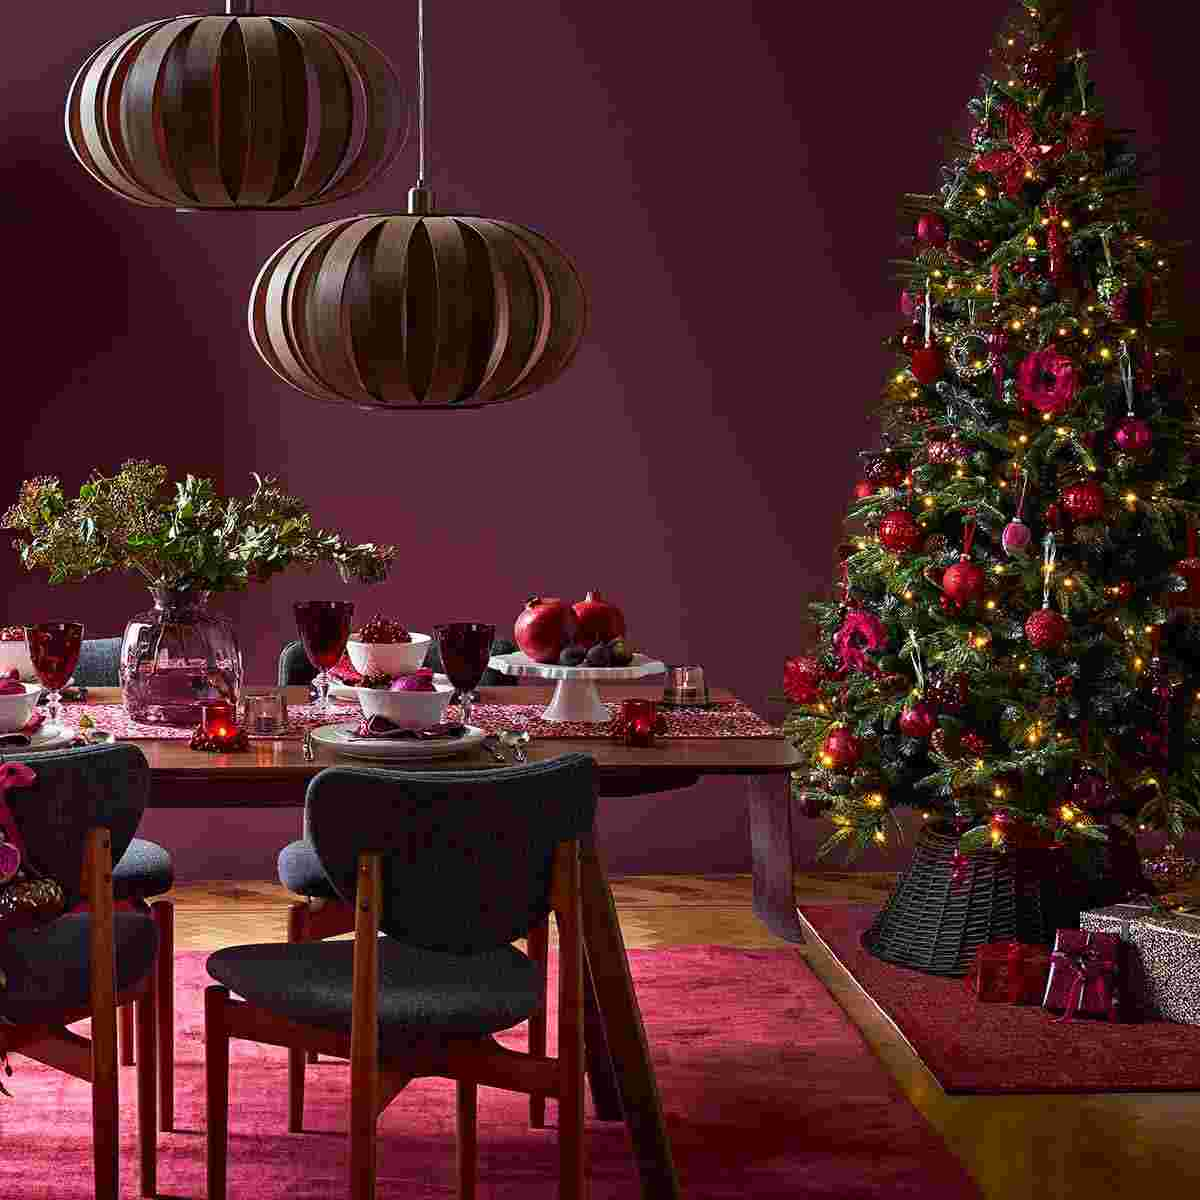 Beautiful plum-coloured dining room; with fully laid table and tree